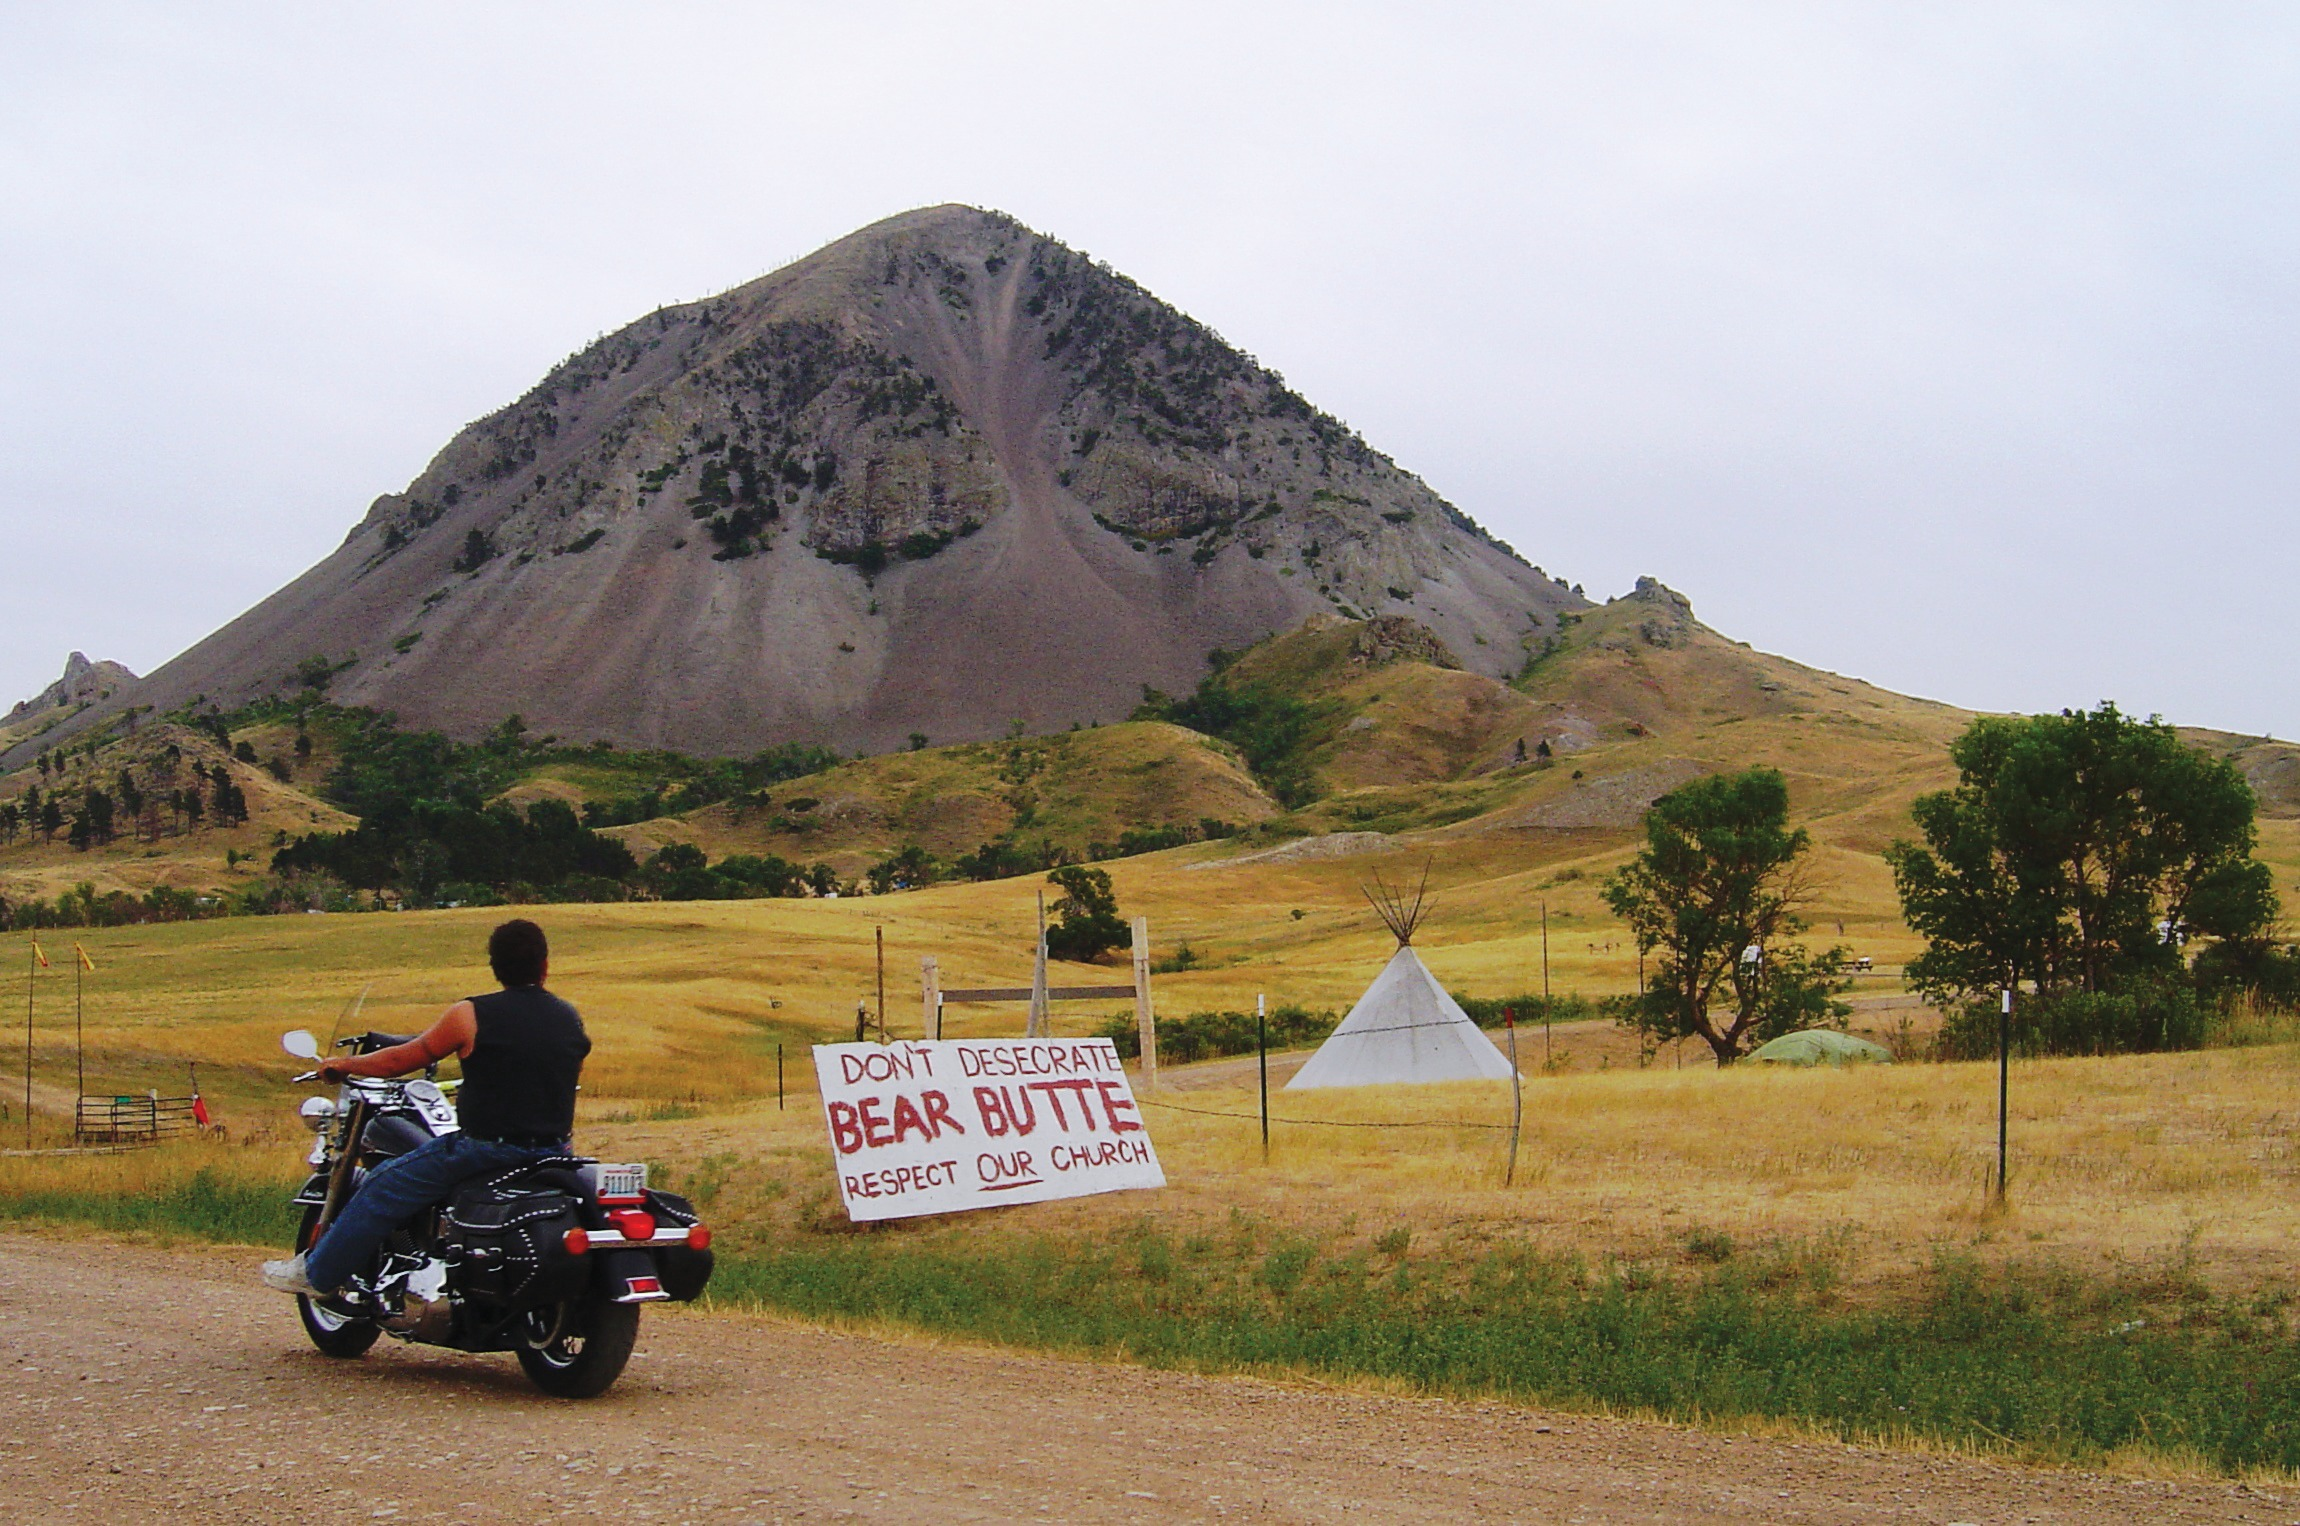 Native Sun News: Tribes told of potential burials near Bear Butte